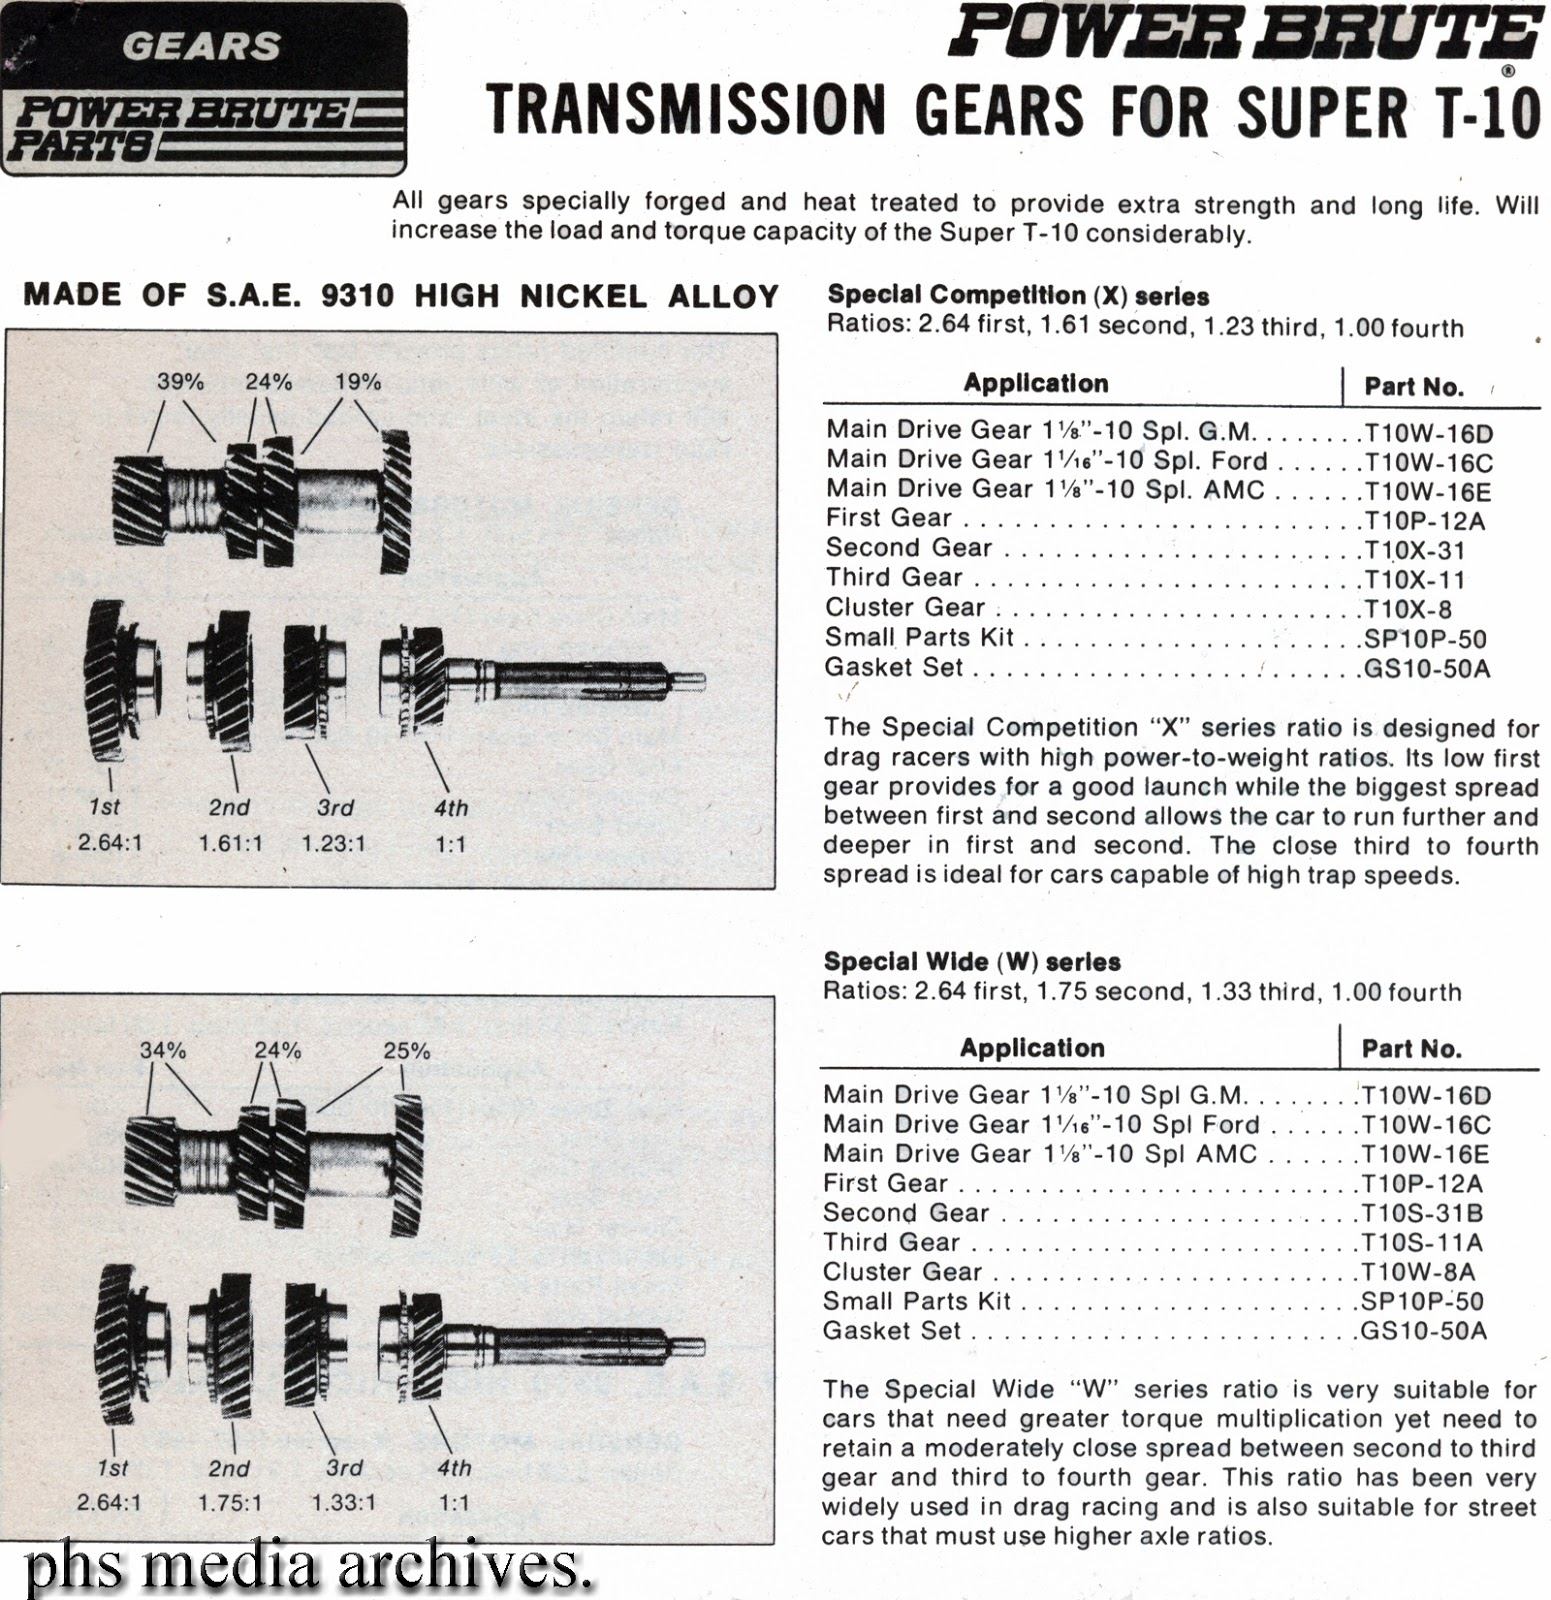 gm 4 speed manual transmission identification numbers